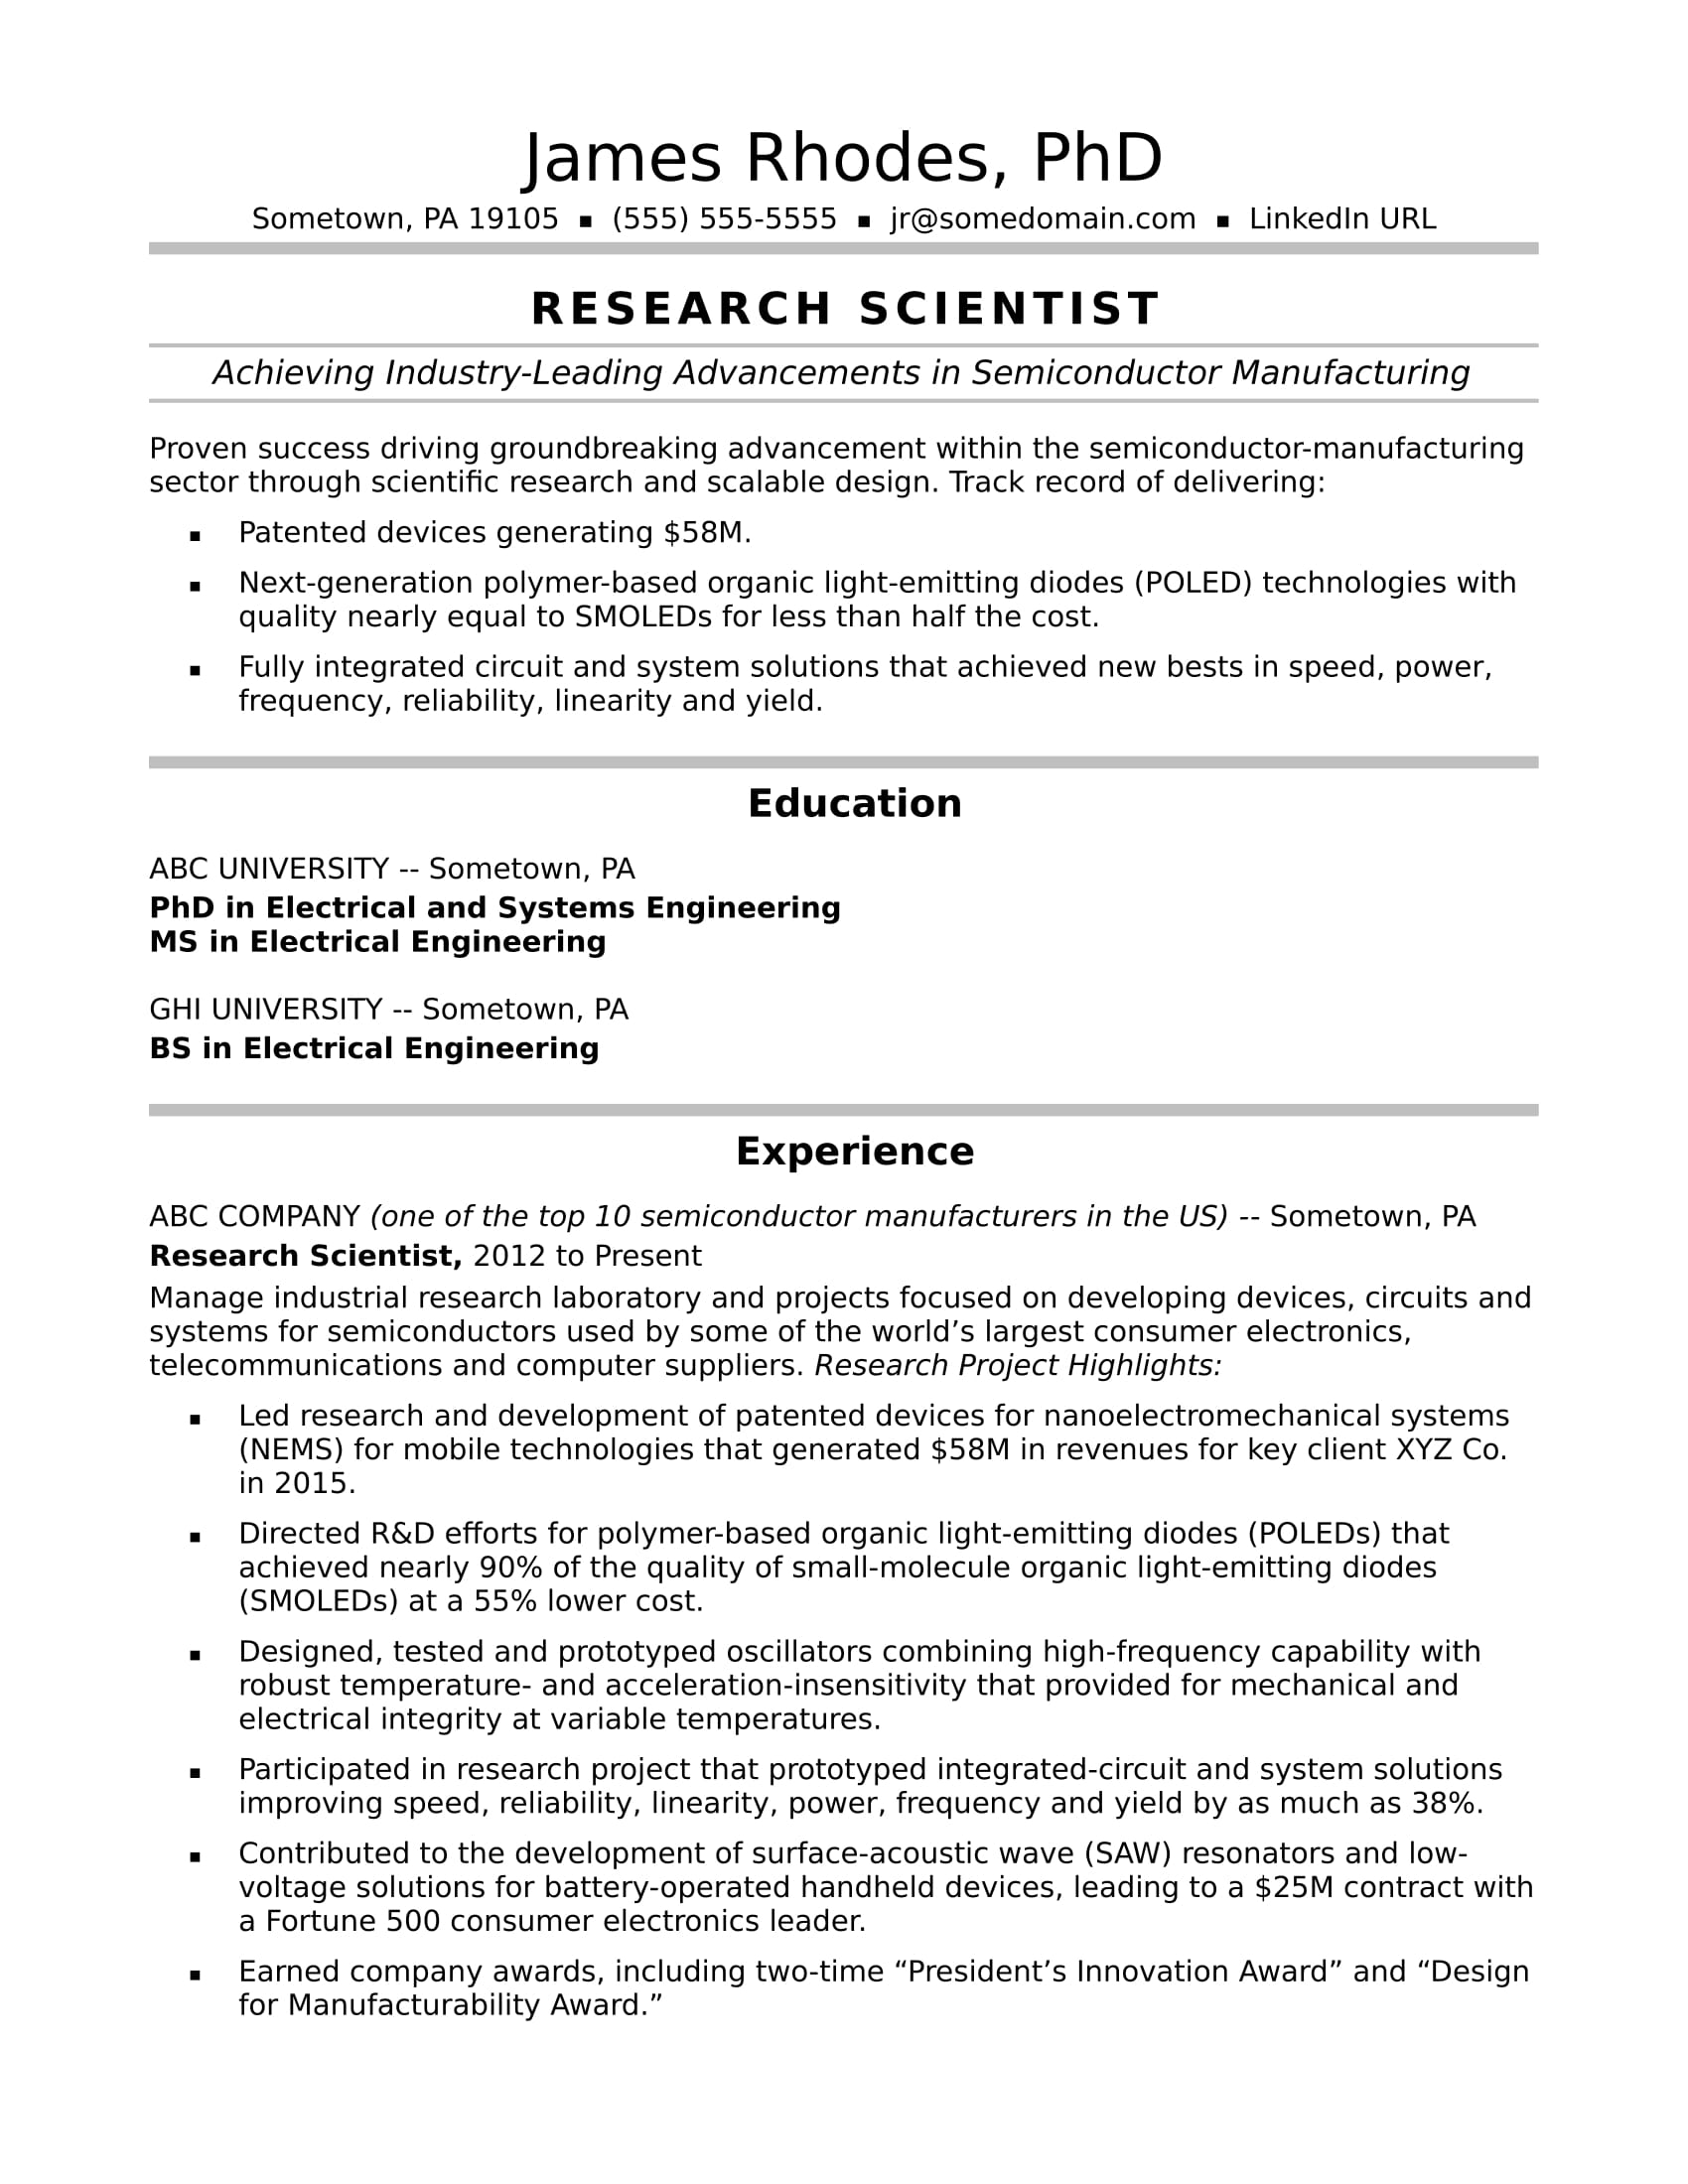 research scientist resume sample